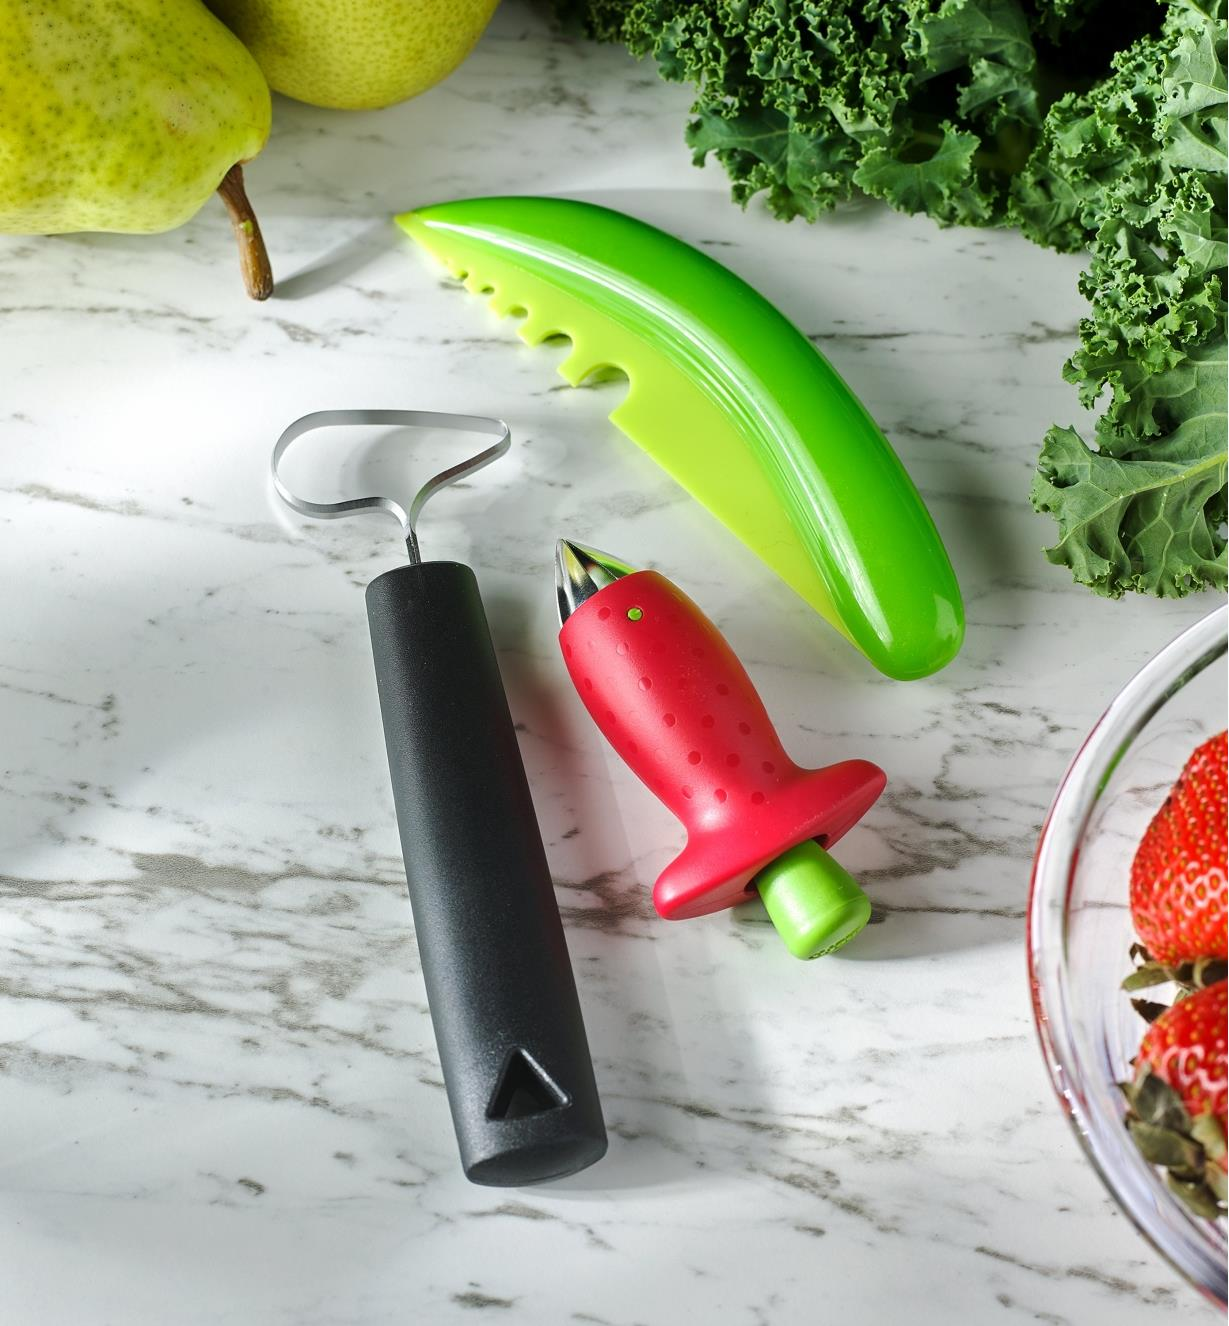 The fruit & vegetable corer, the herb stripper and the strawberry huller on a countertop